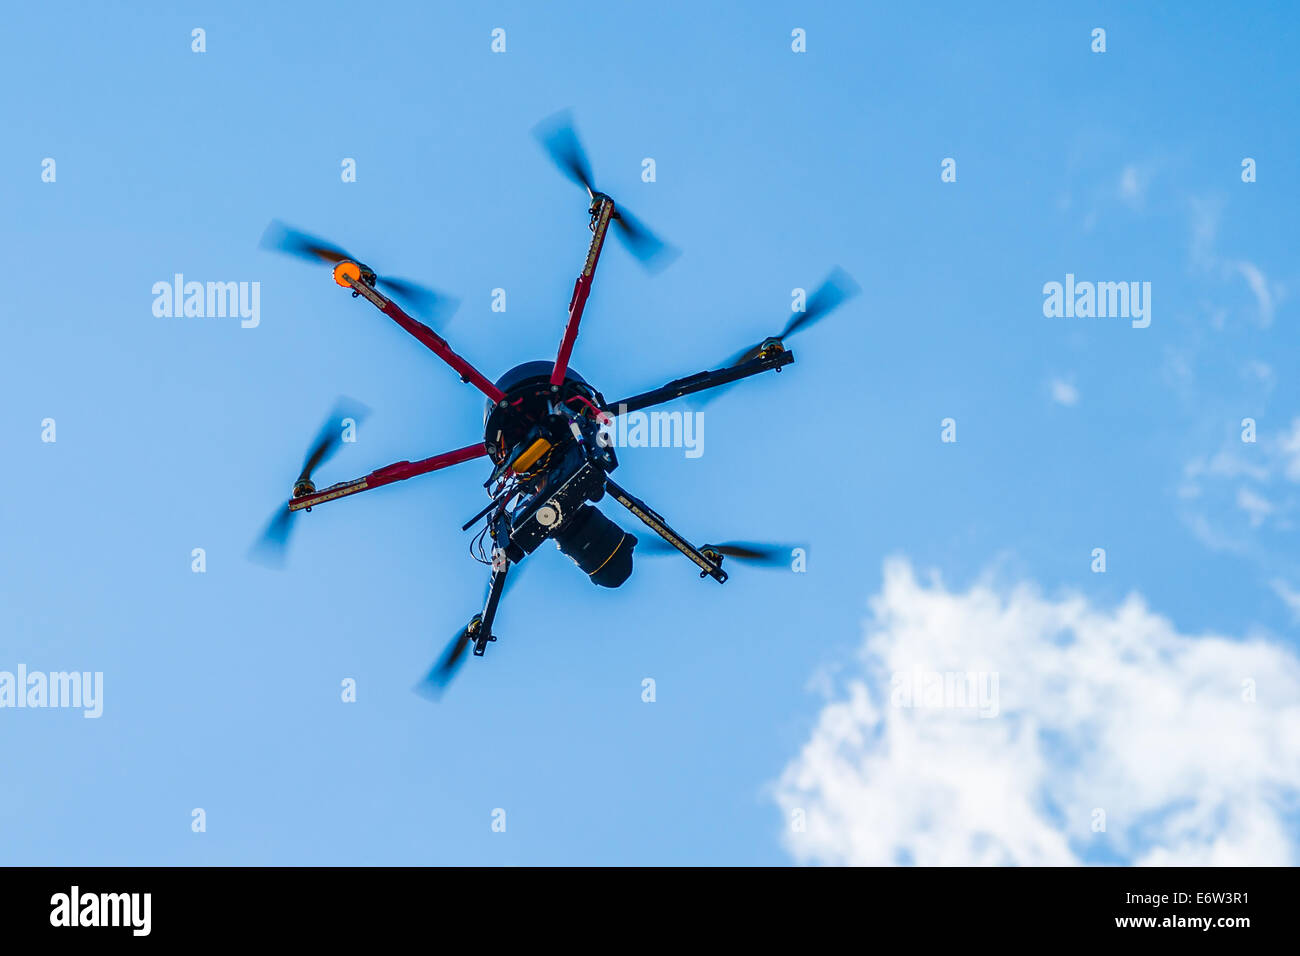 Hexacopter with photo camera attached in flight - Stock Image